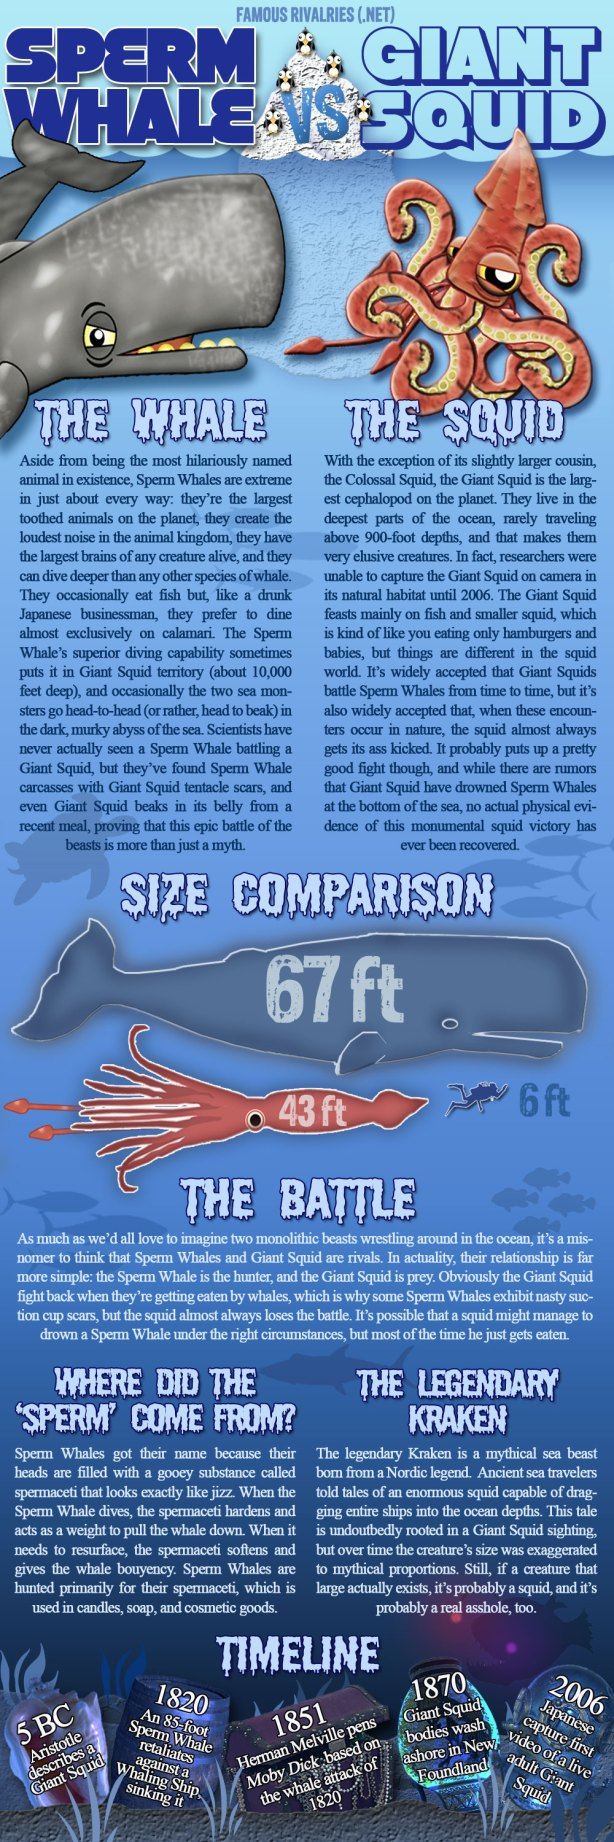 Famous Rivalries Sperm Whale vs Giant Squid